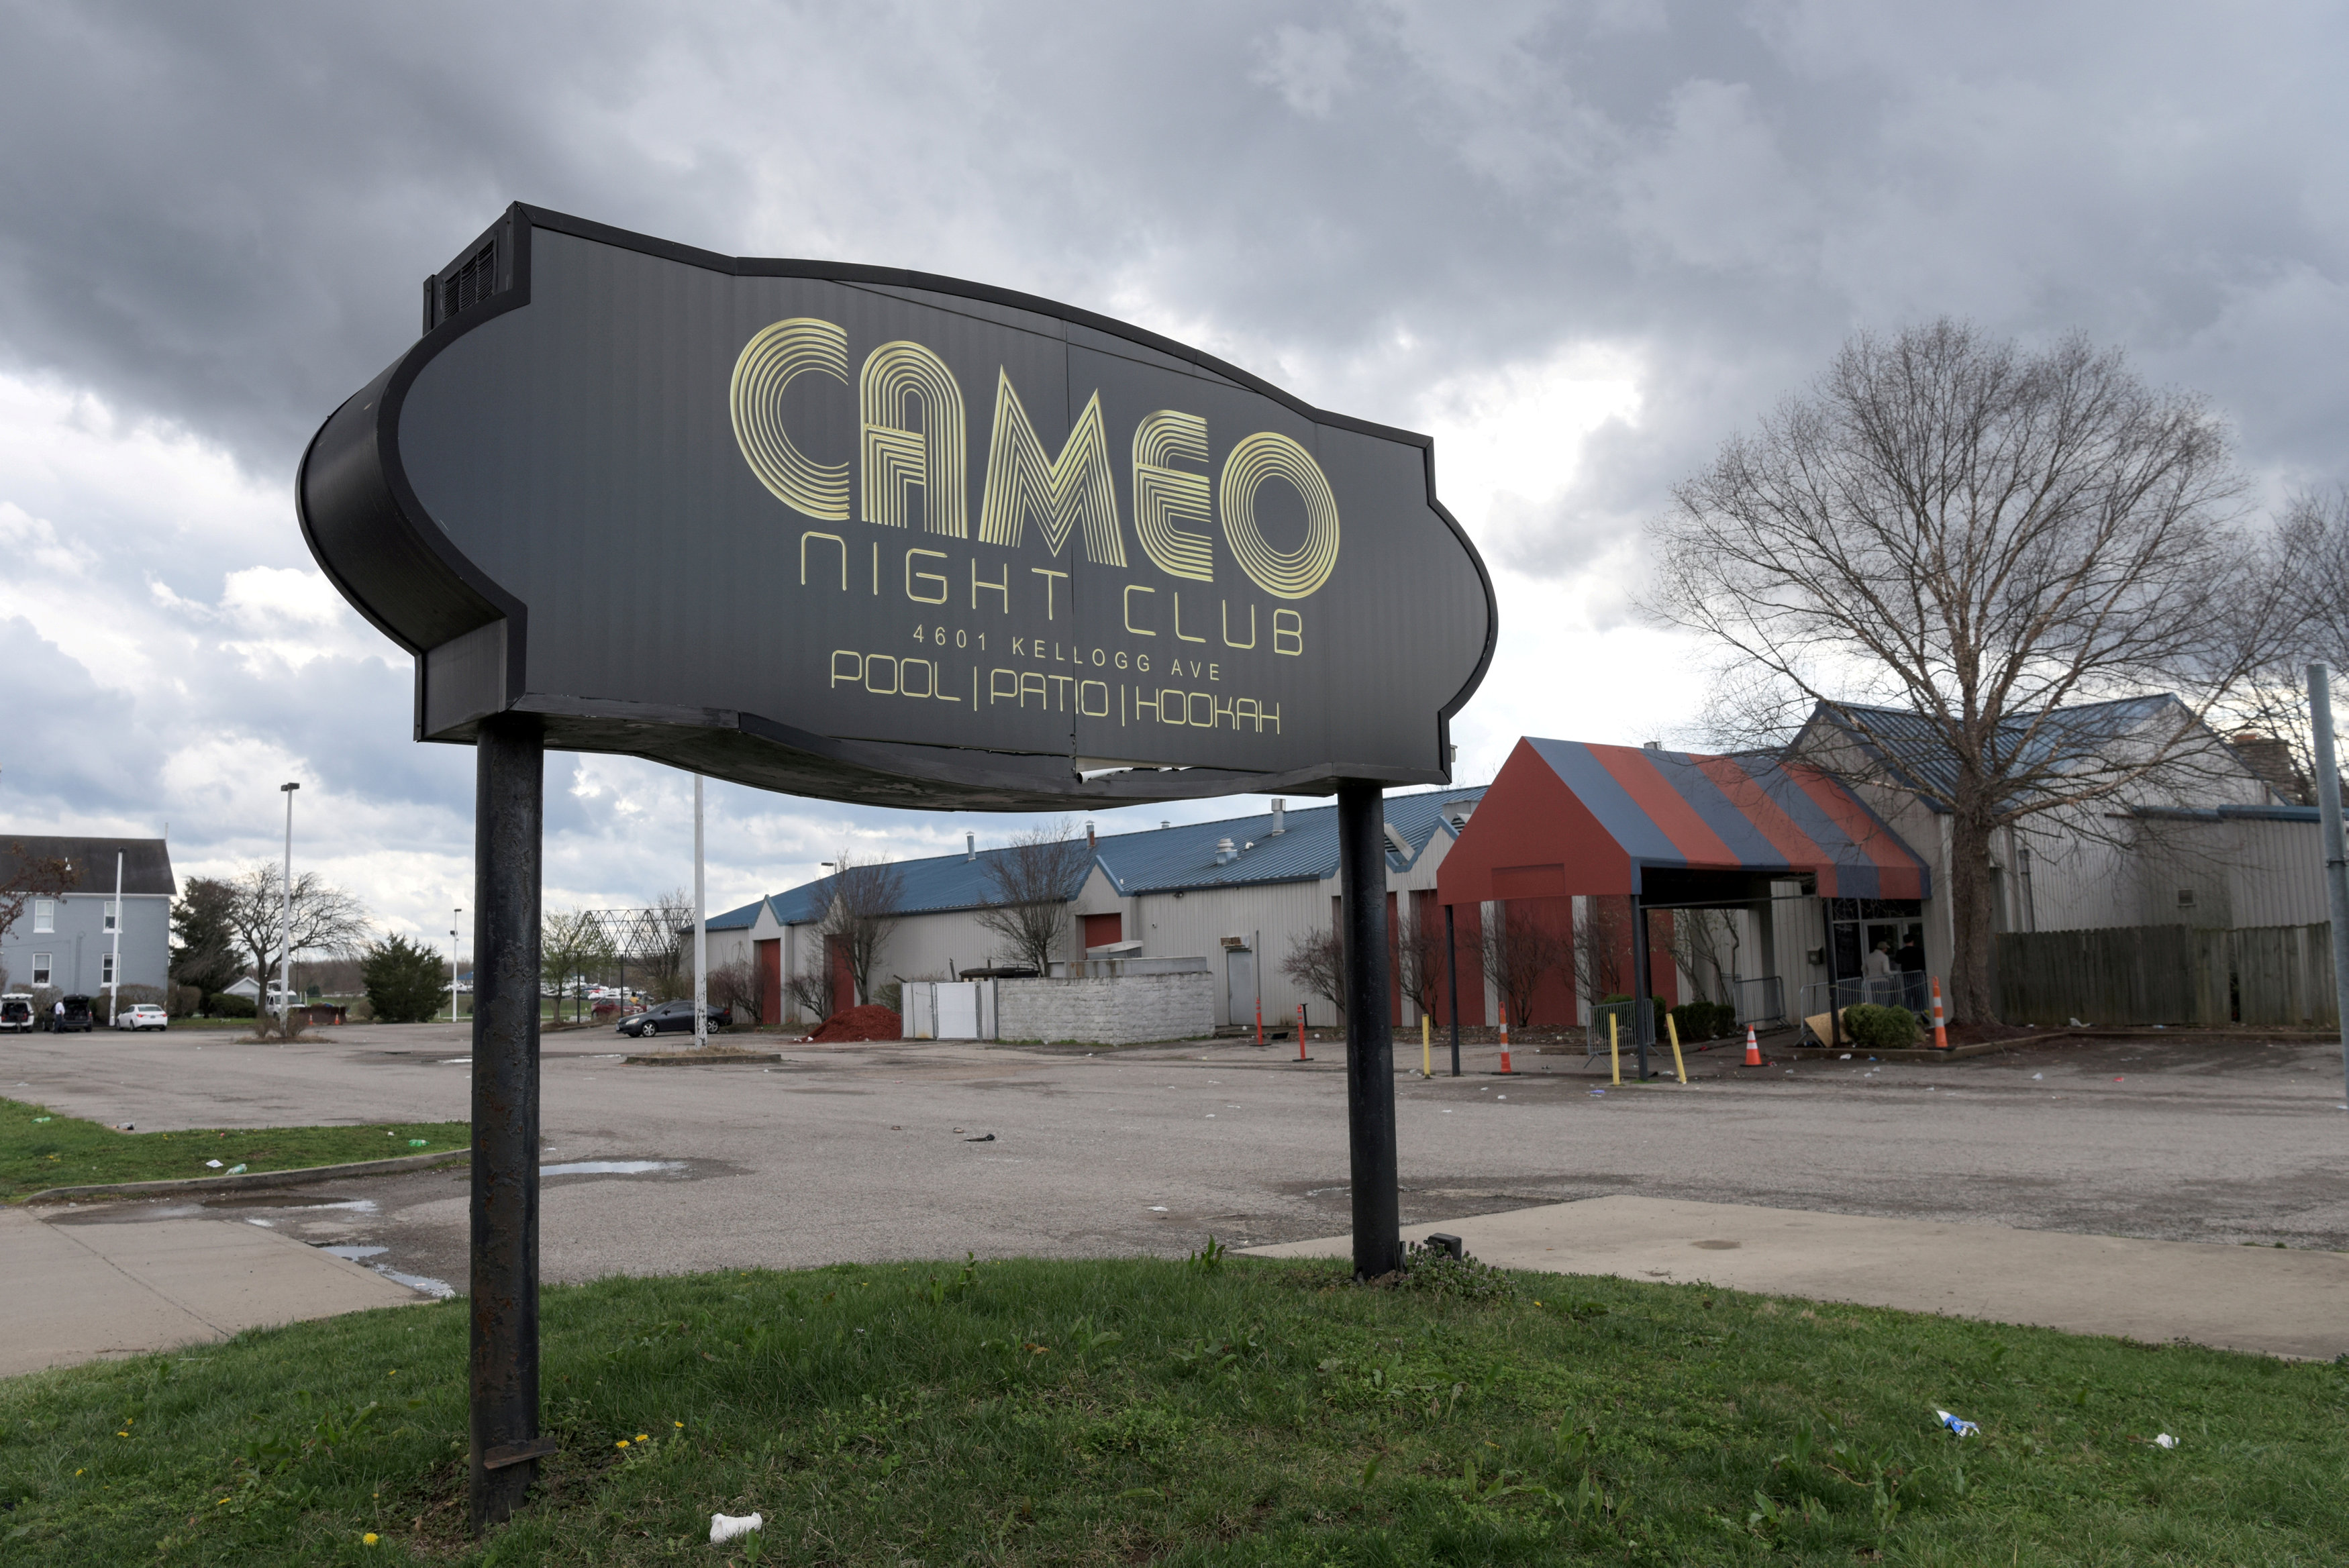 FILE PHOTO -- The parking lot of Cameo Nightlife club remains empty after police removed barrier tape from the scene of a mass shooting in Cincinnati, Ohio, U.S. March 26, 2017. REUTERS/Caleb Hughes/File Photo